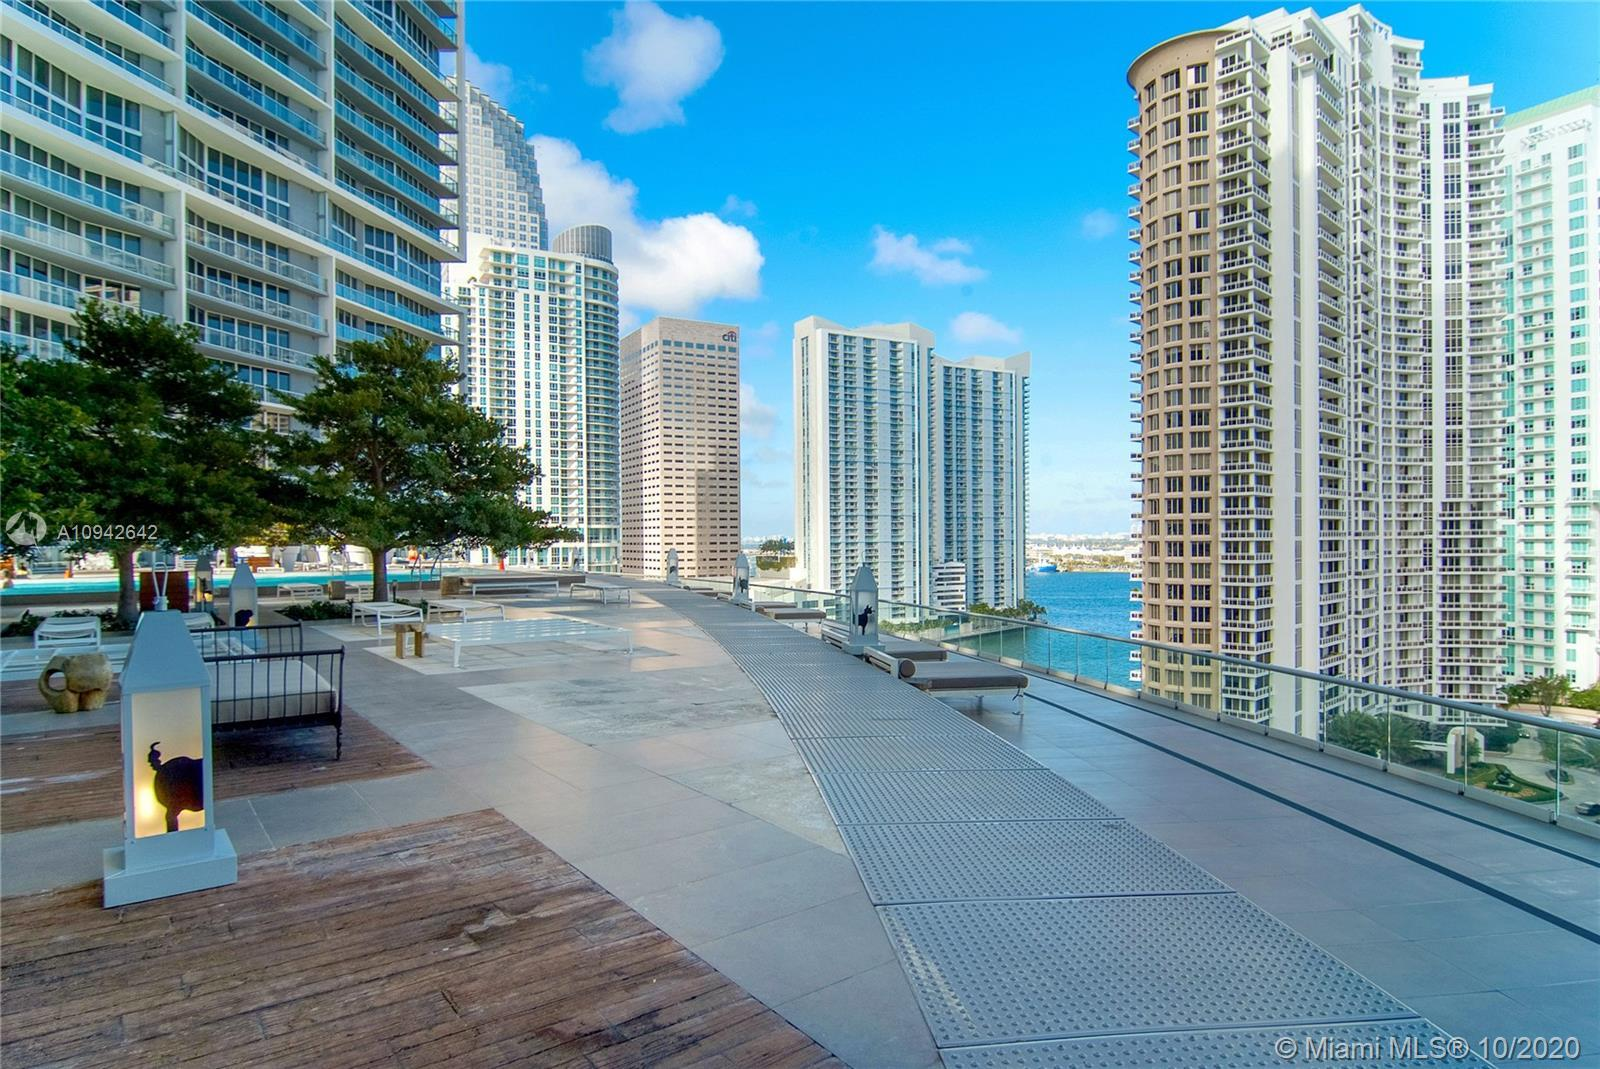 Amazing unit with One bedroom/ One Bathroom on the 40th floor with an incredible view. Installed Por